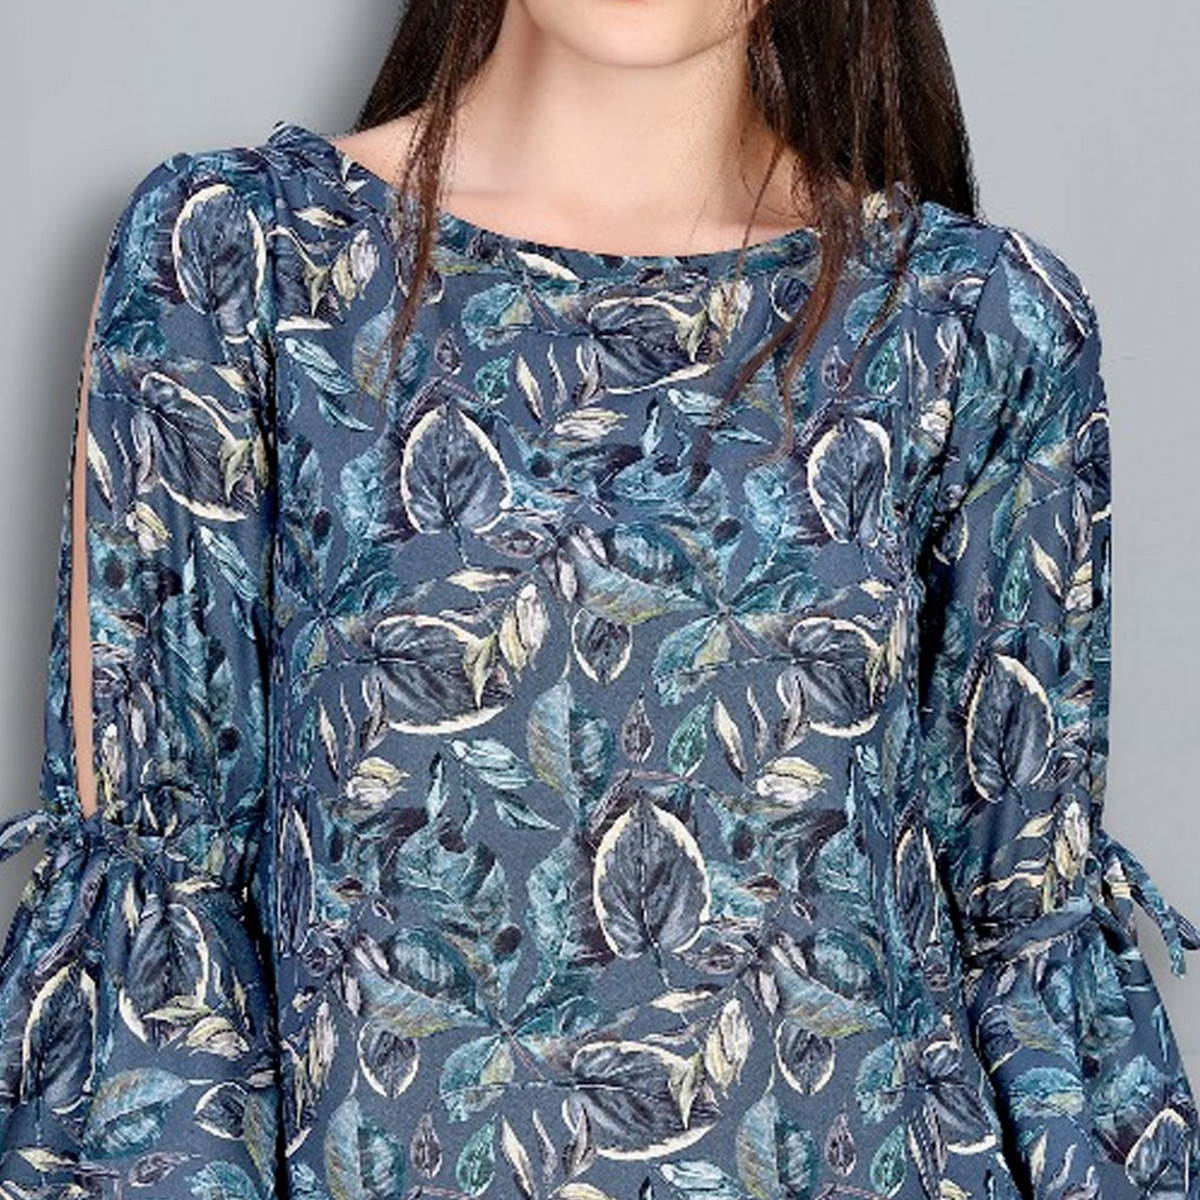 Ravishing Blue Colored Digital Printed Fancy Cotton Top